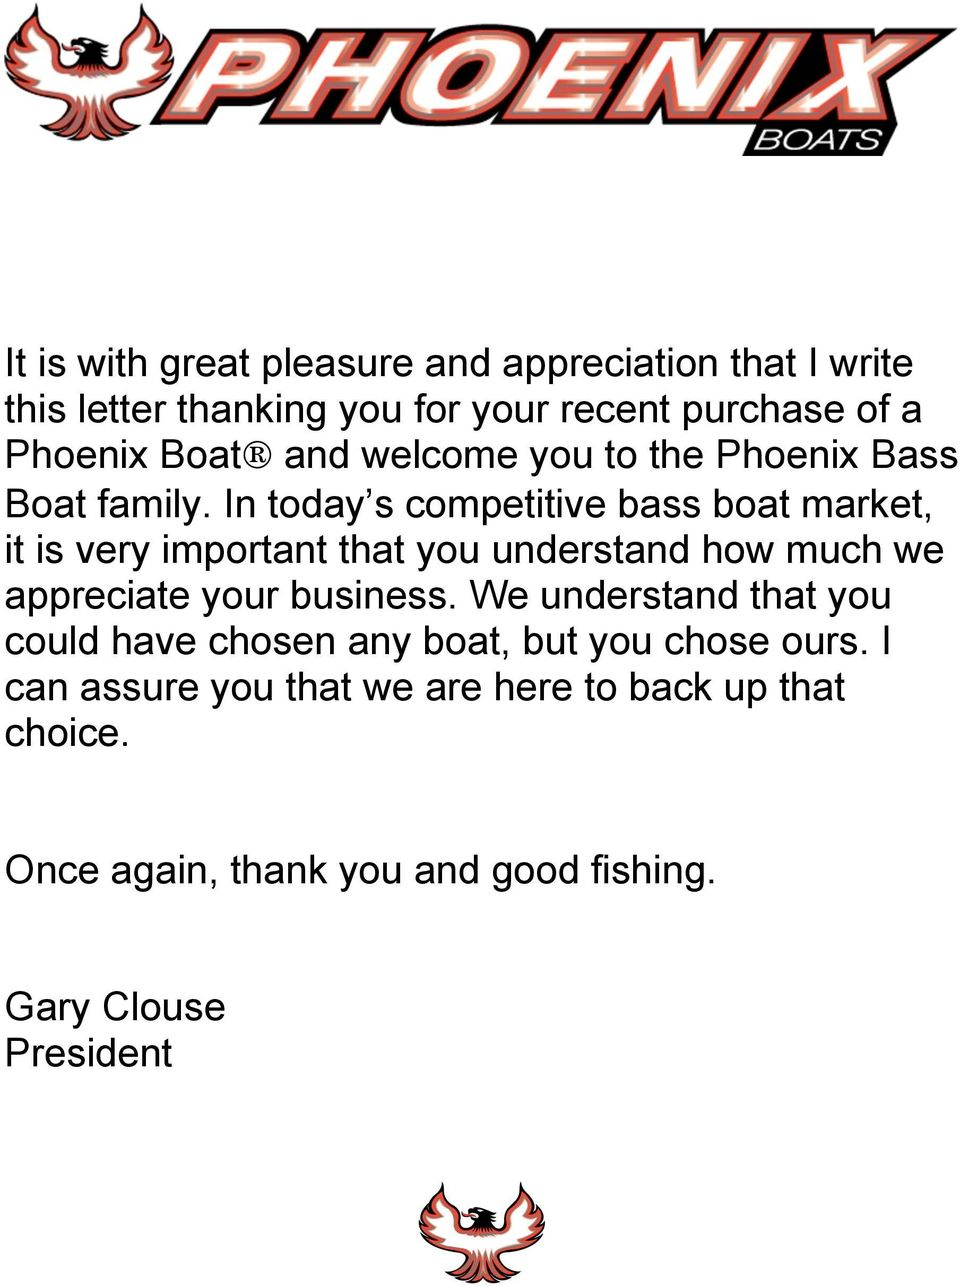 In today s competitive bass boat market, it is very important that you understand how much we appreciate your business.